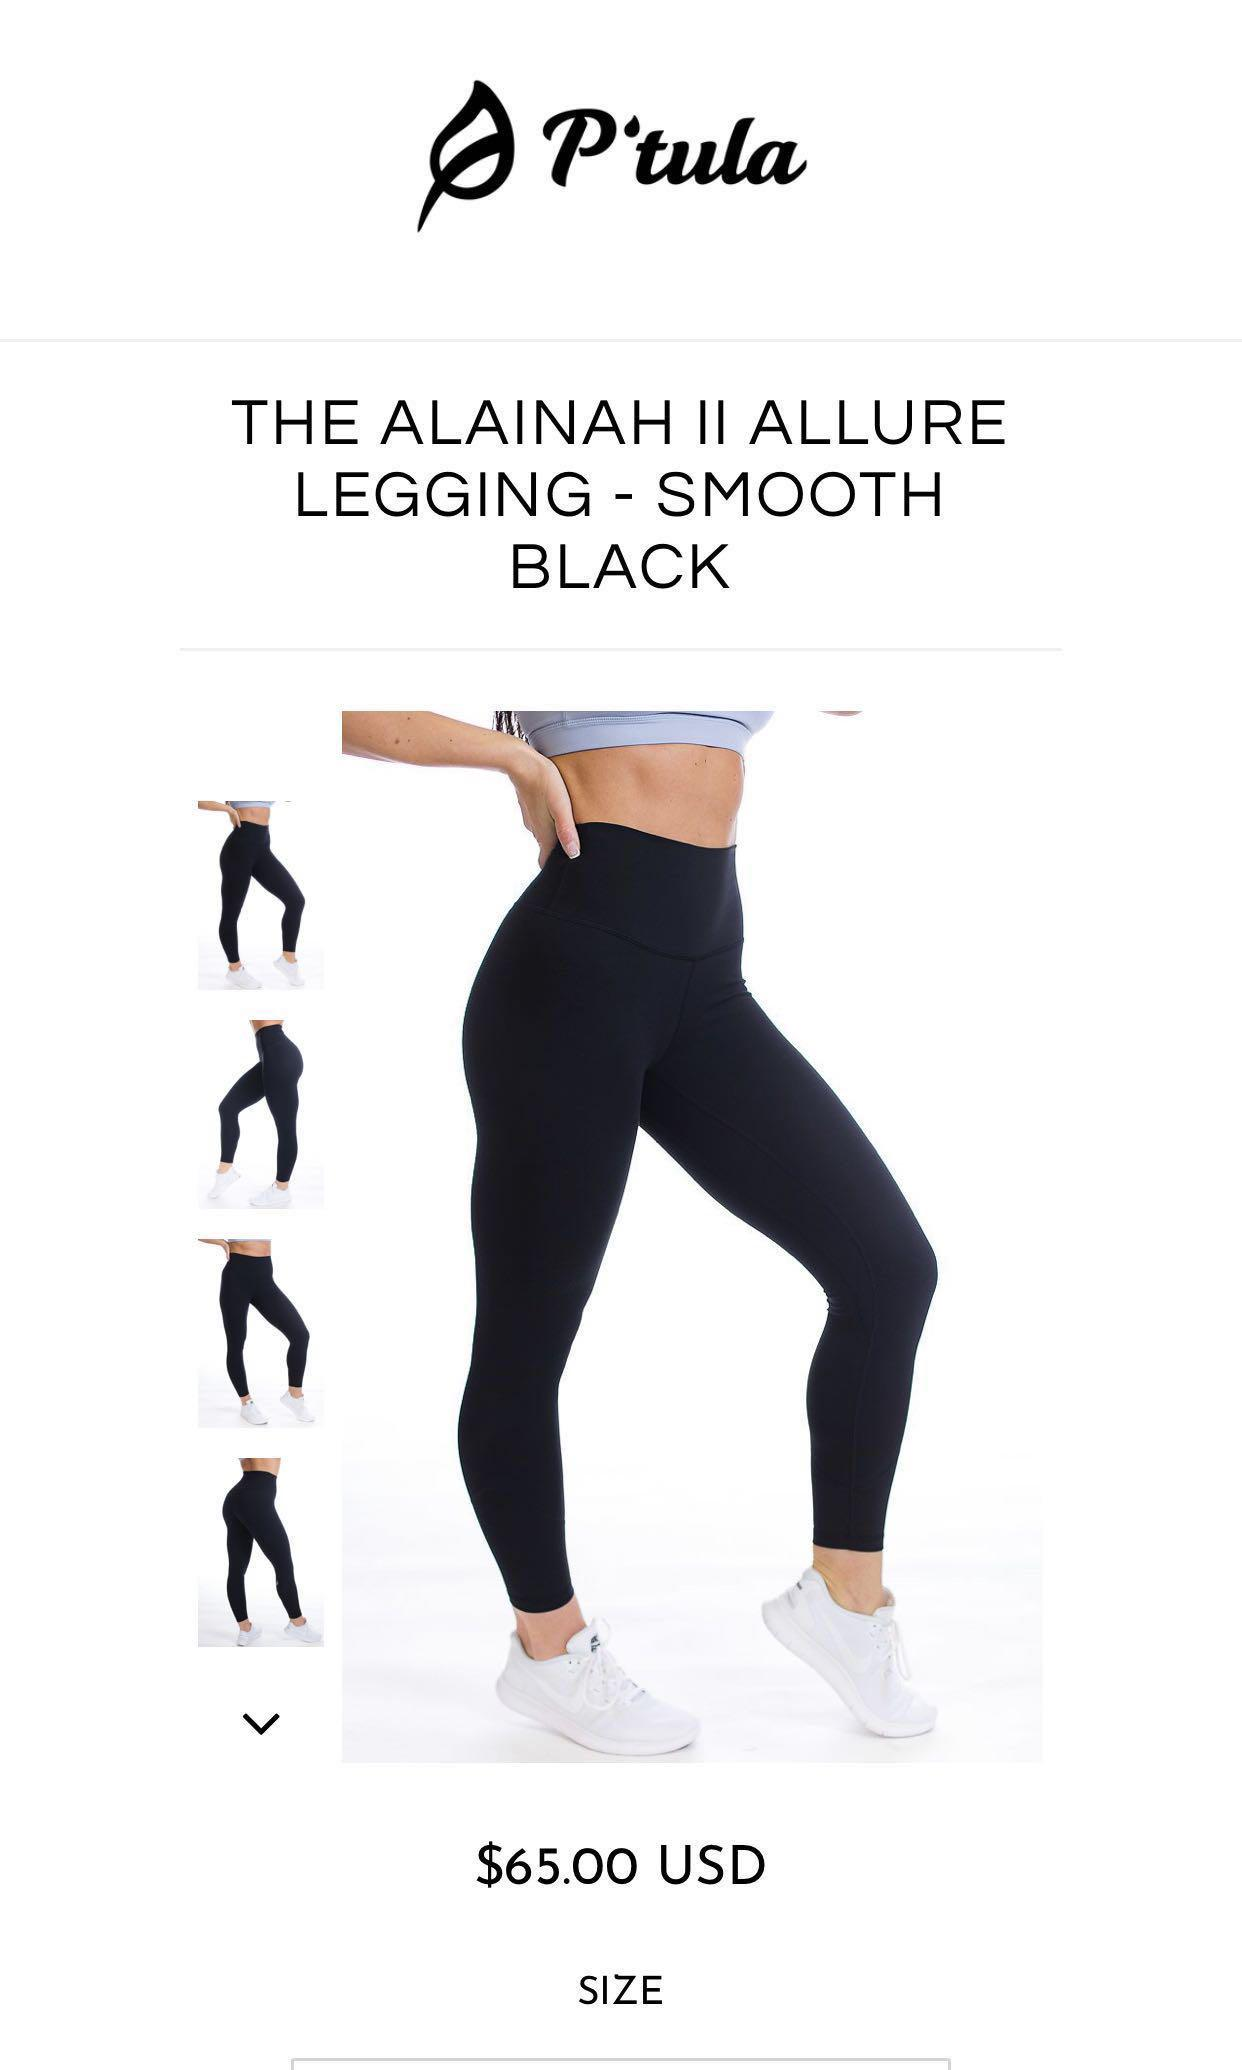 Ptula Alainah Black Leggings Sports Sports Apparel On Carousell Use the best parcel forwarding service in turkey, get your delivery address & save money! carousell